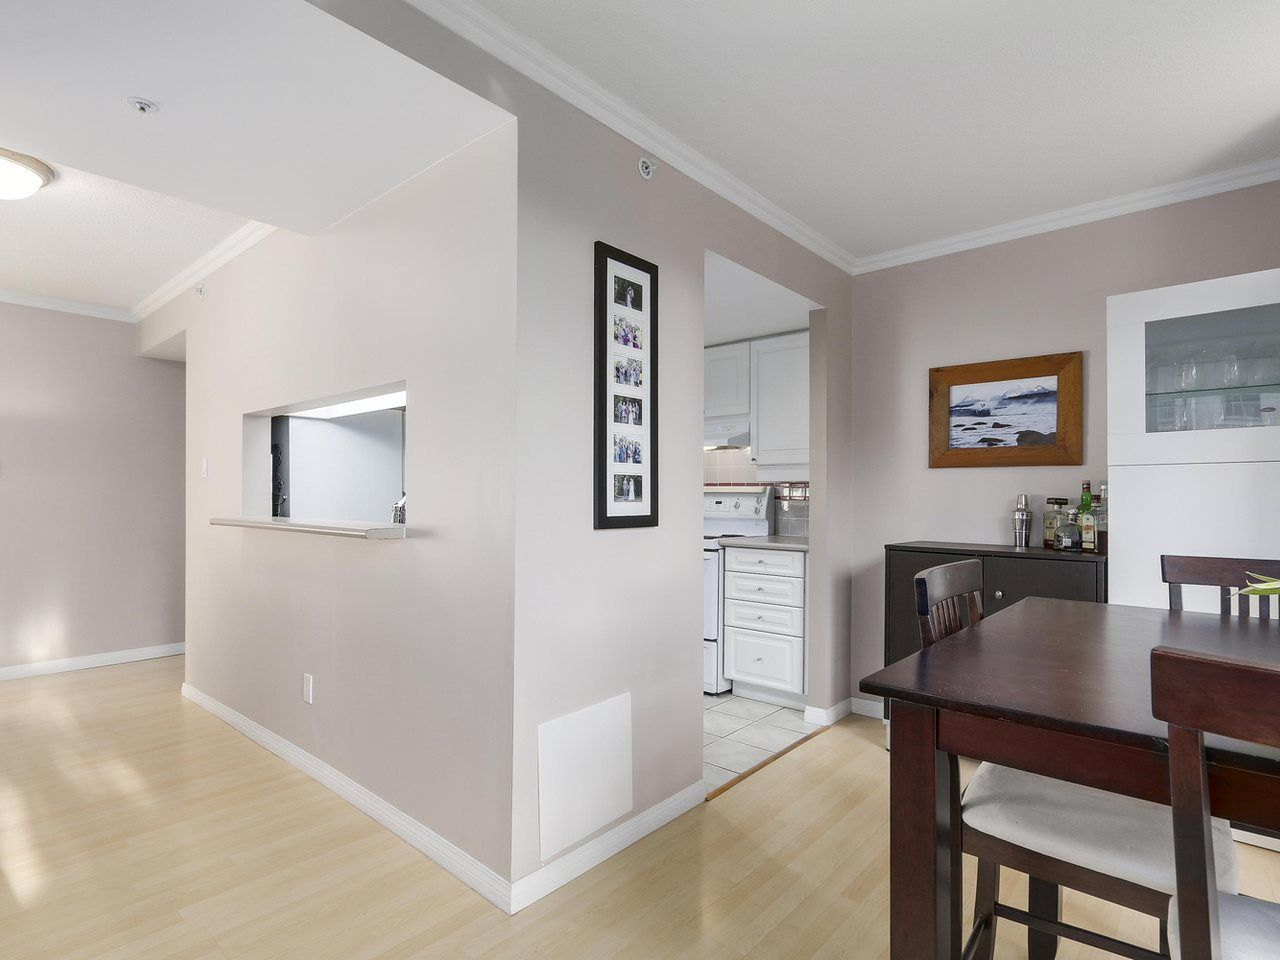 """Main Photo: 501 183 KEEFER Place in Vancouver: Downtown VW Condo for sale in """"PARIS PLACE"""" (Vancouver West)  : MLS®# R2124284"""